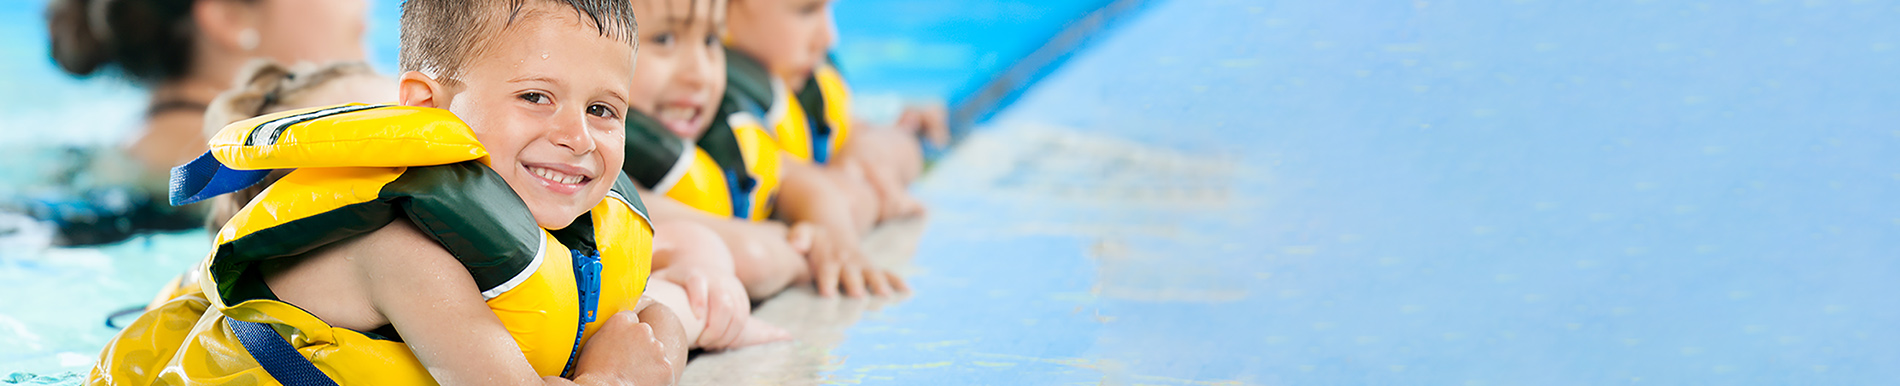 https://www.healthychildren.org/SiteCollectionImage-Homepage-Banners/SwimmingLessonsBanner_es.jpg